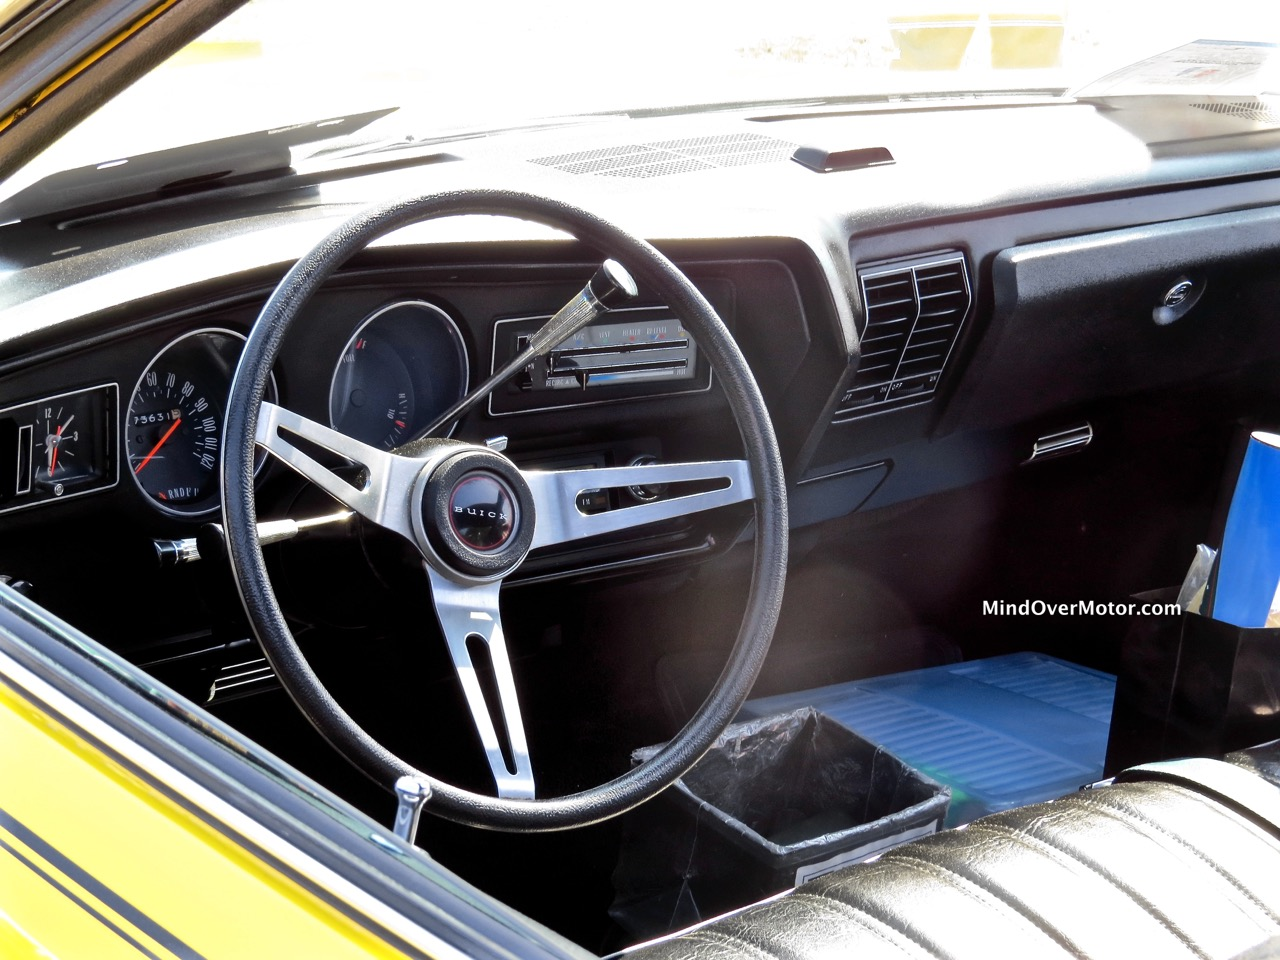 1973 Buick Skylark GS Stage 1 Interior